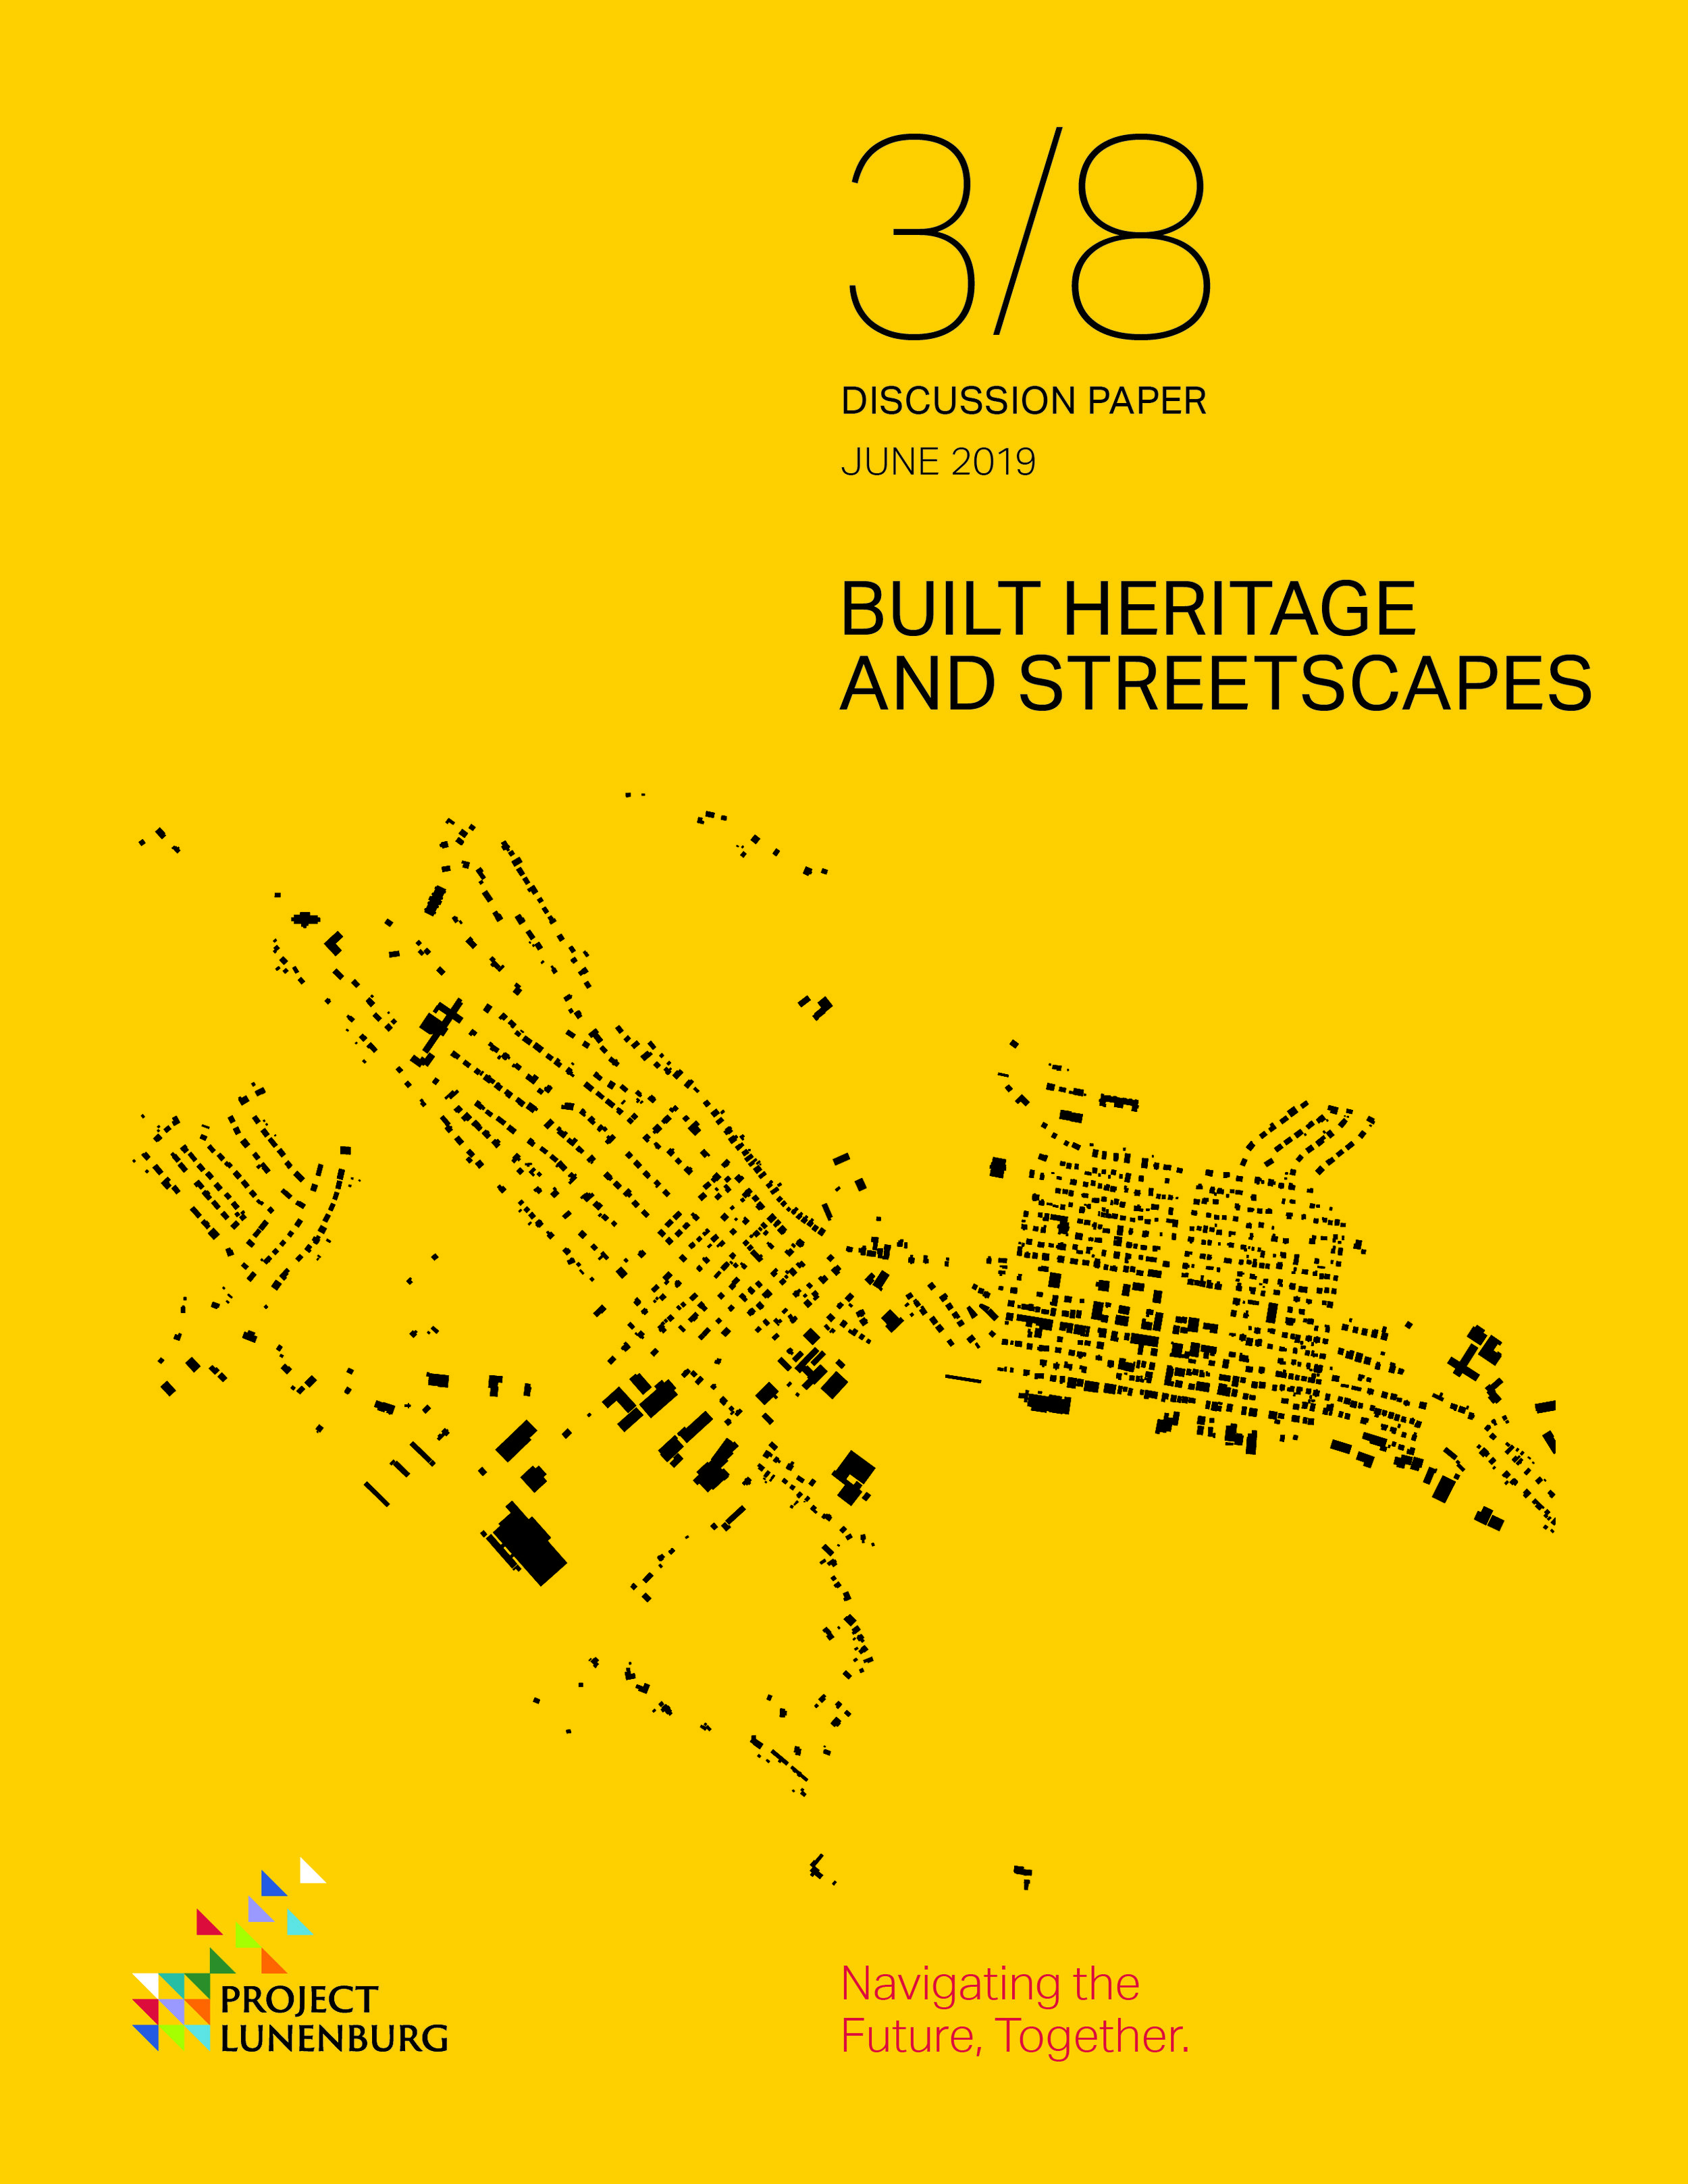 Discussion Paper 3/8: Built Heritage and Streetscapes  This paper looks at the qualities and opportunities for protection and evolution of built heritage and public streets. It describes the national context of standards for heritage preservation.